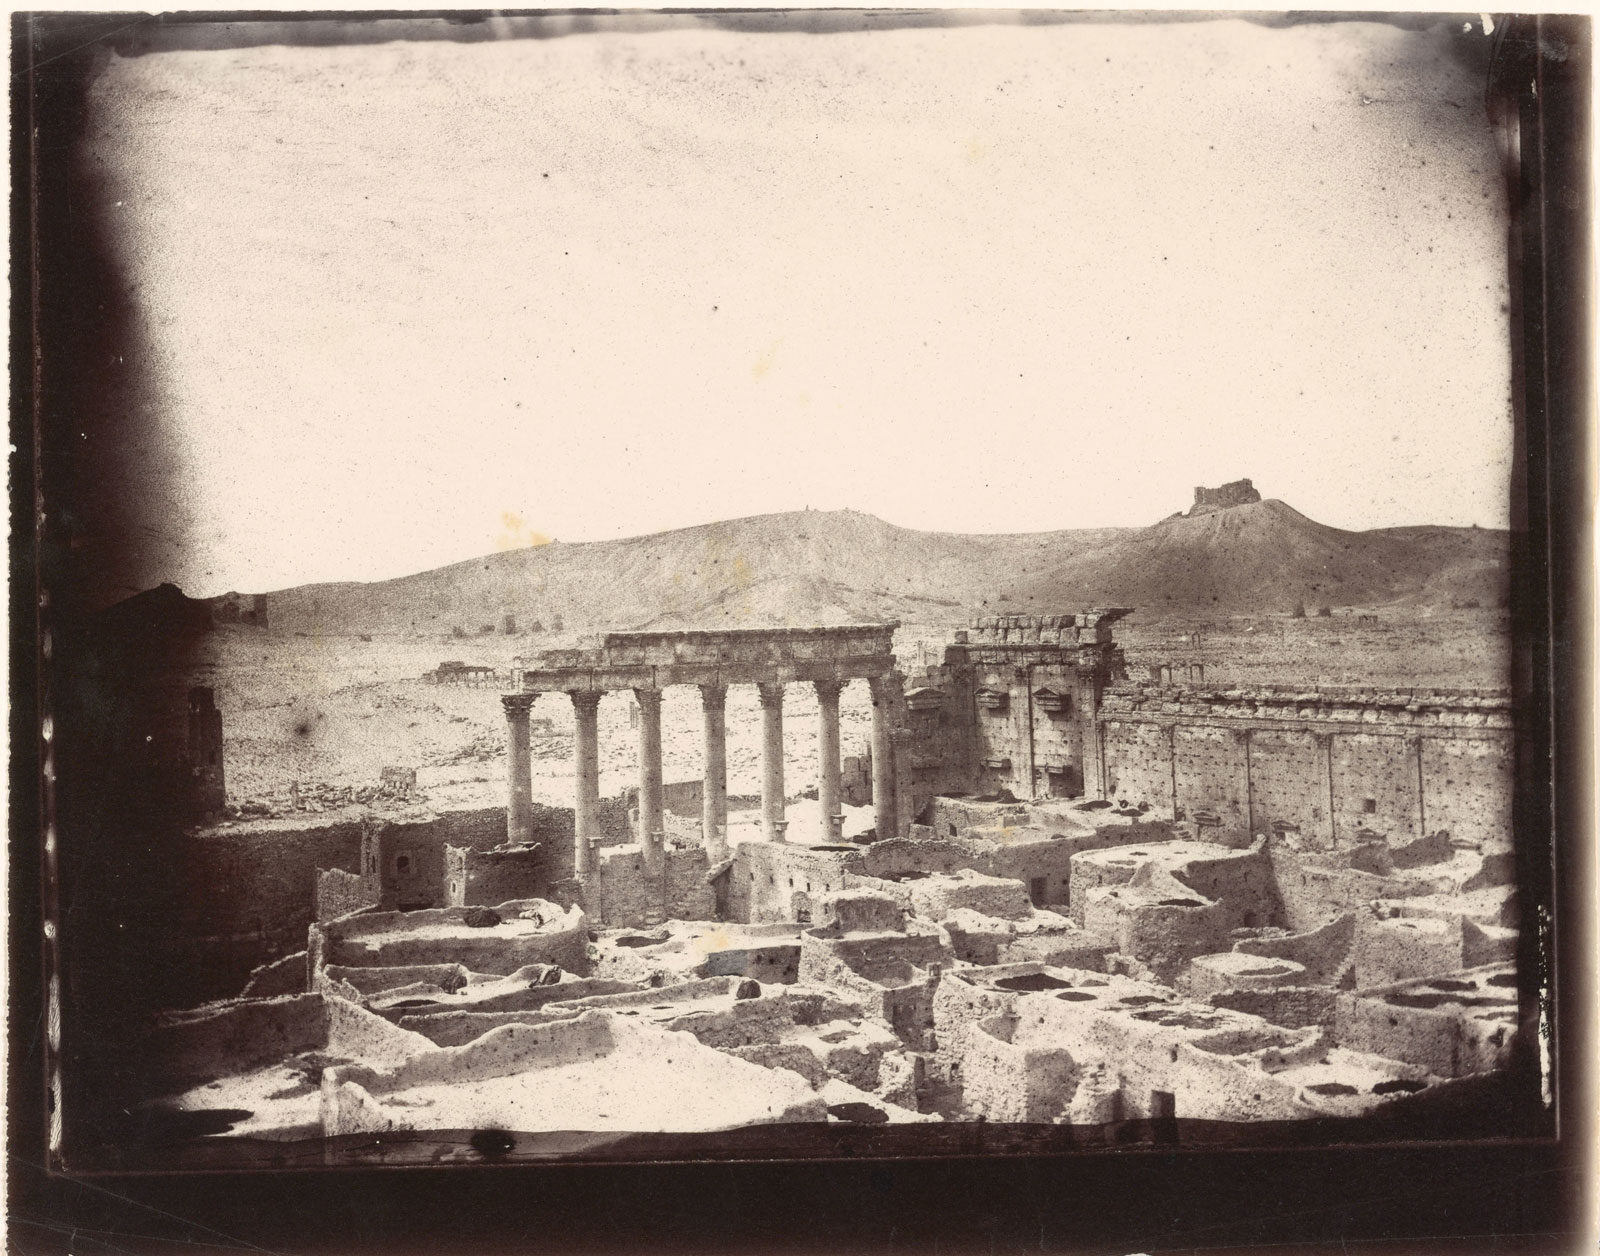 The northwest corner of the courtyard of the Temple of Bel, Palmyra, photographed by Louis Vines, 1864